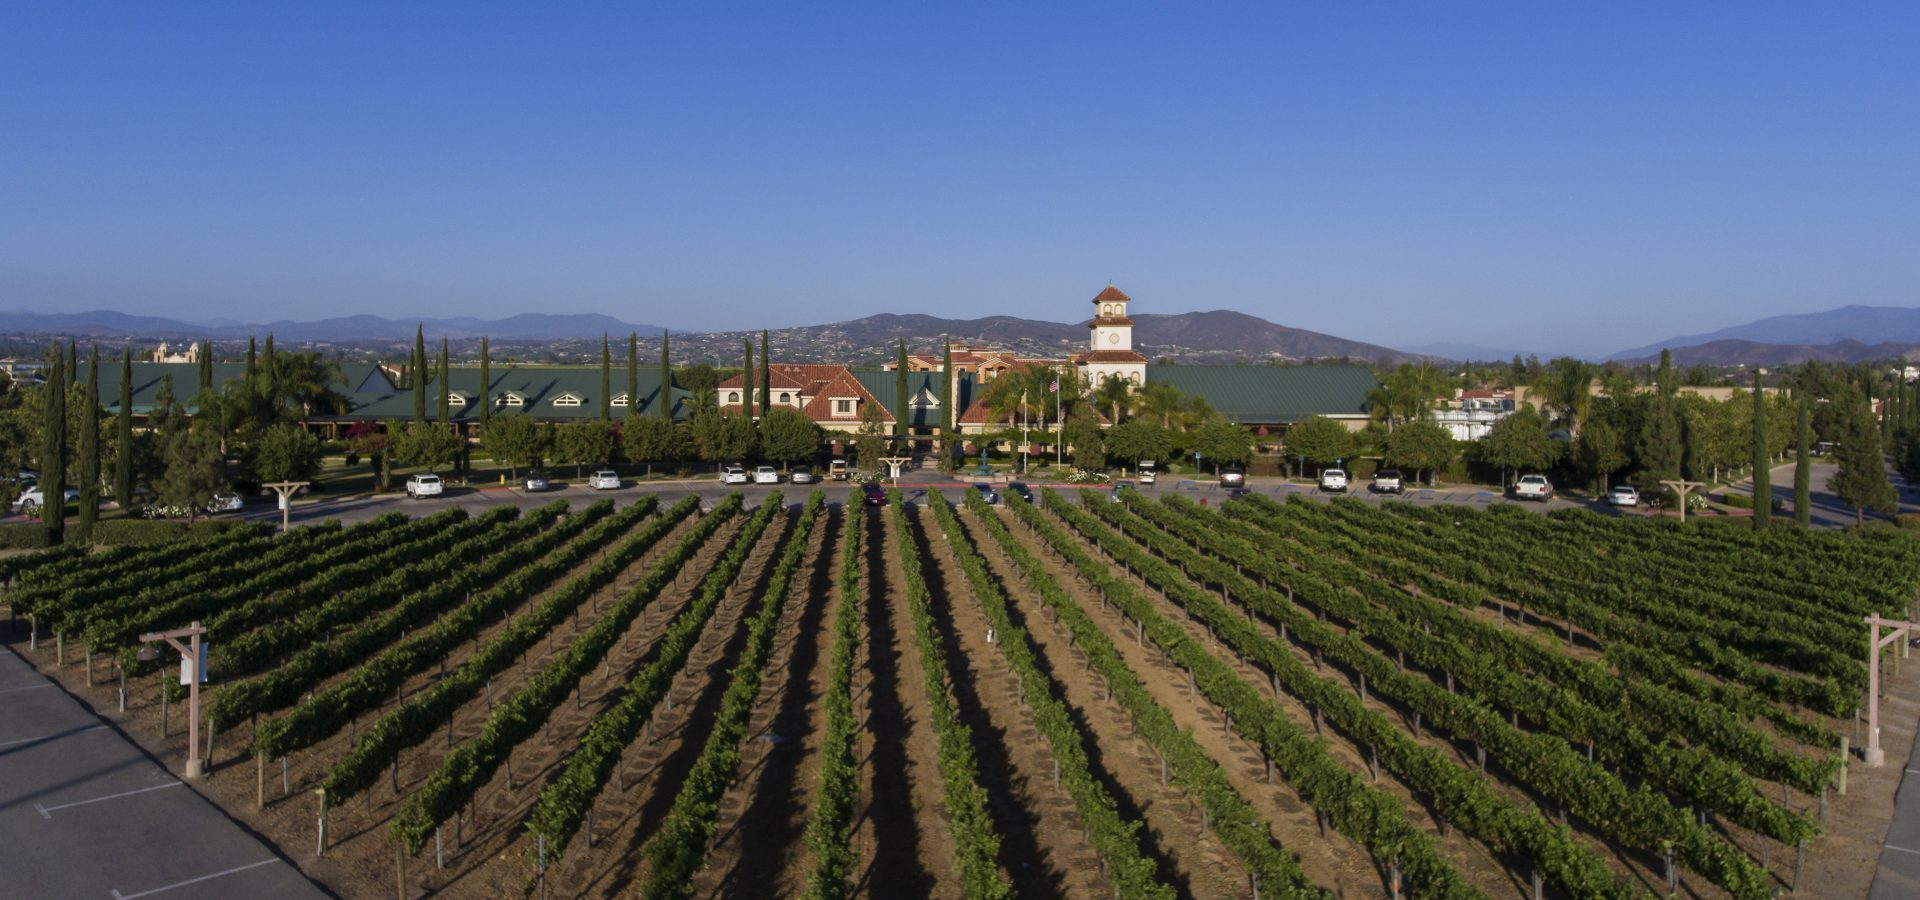 wine vineyards at our Temecula CA resort & spa